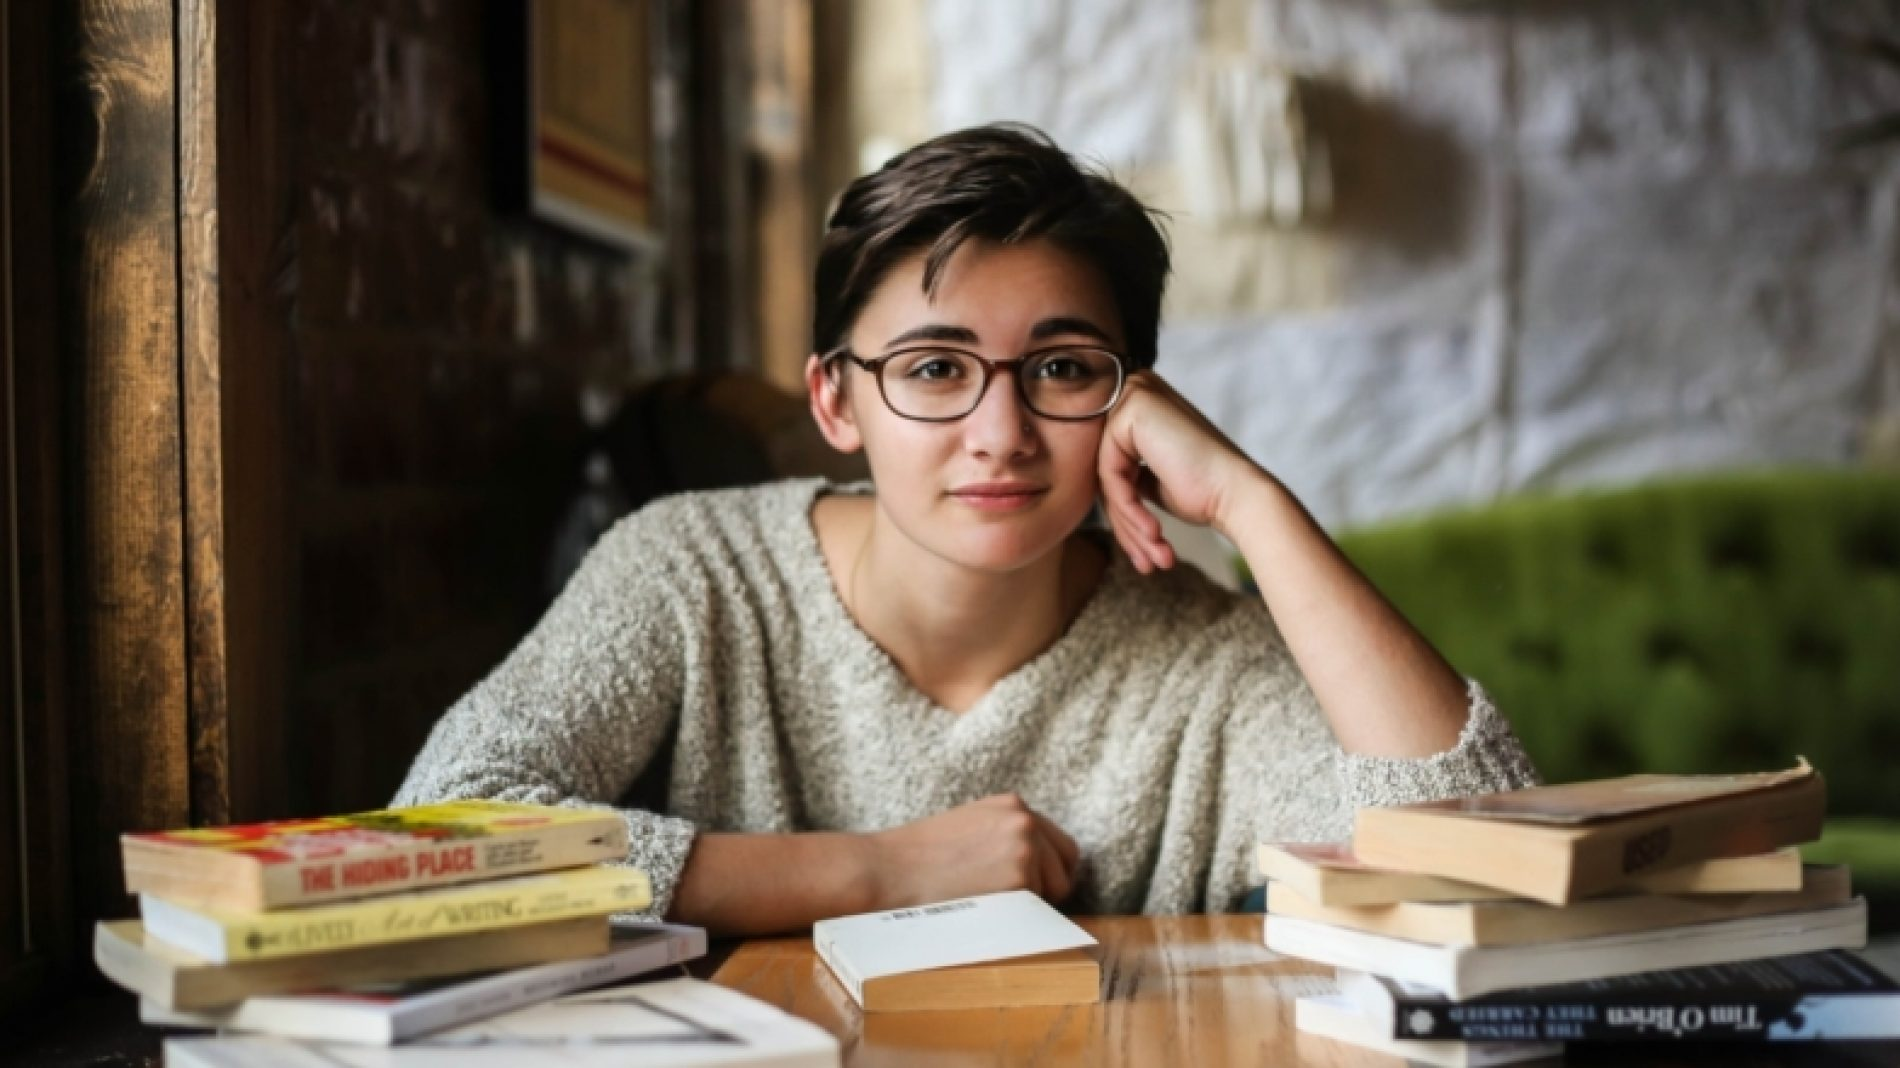 Young-students-with-glasses-and-books-BpagCg